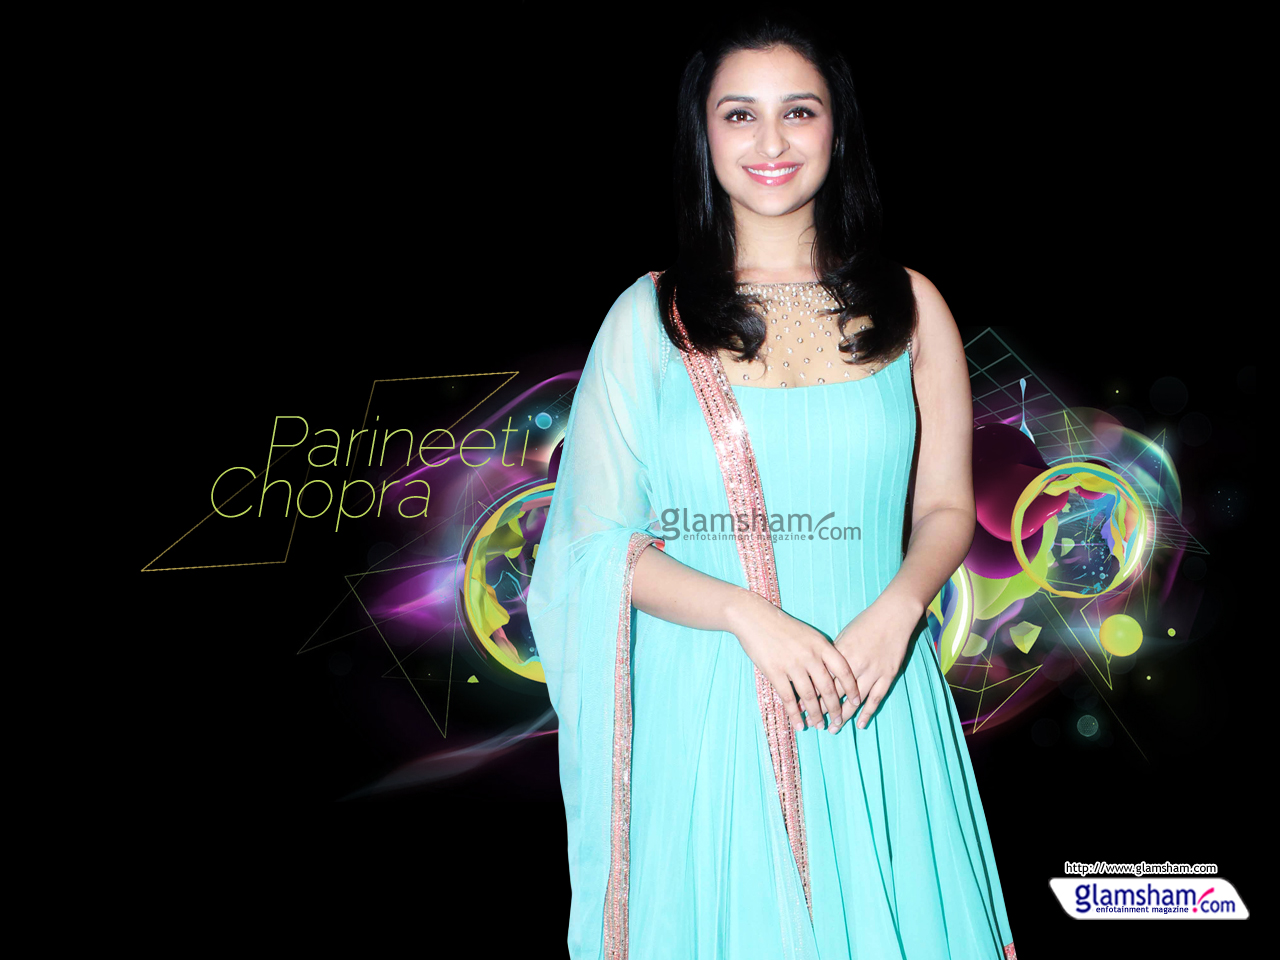 Parineeti Chopra Wallpapers Free Download Hd Bollywood Actress